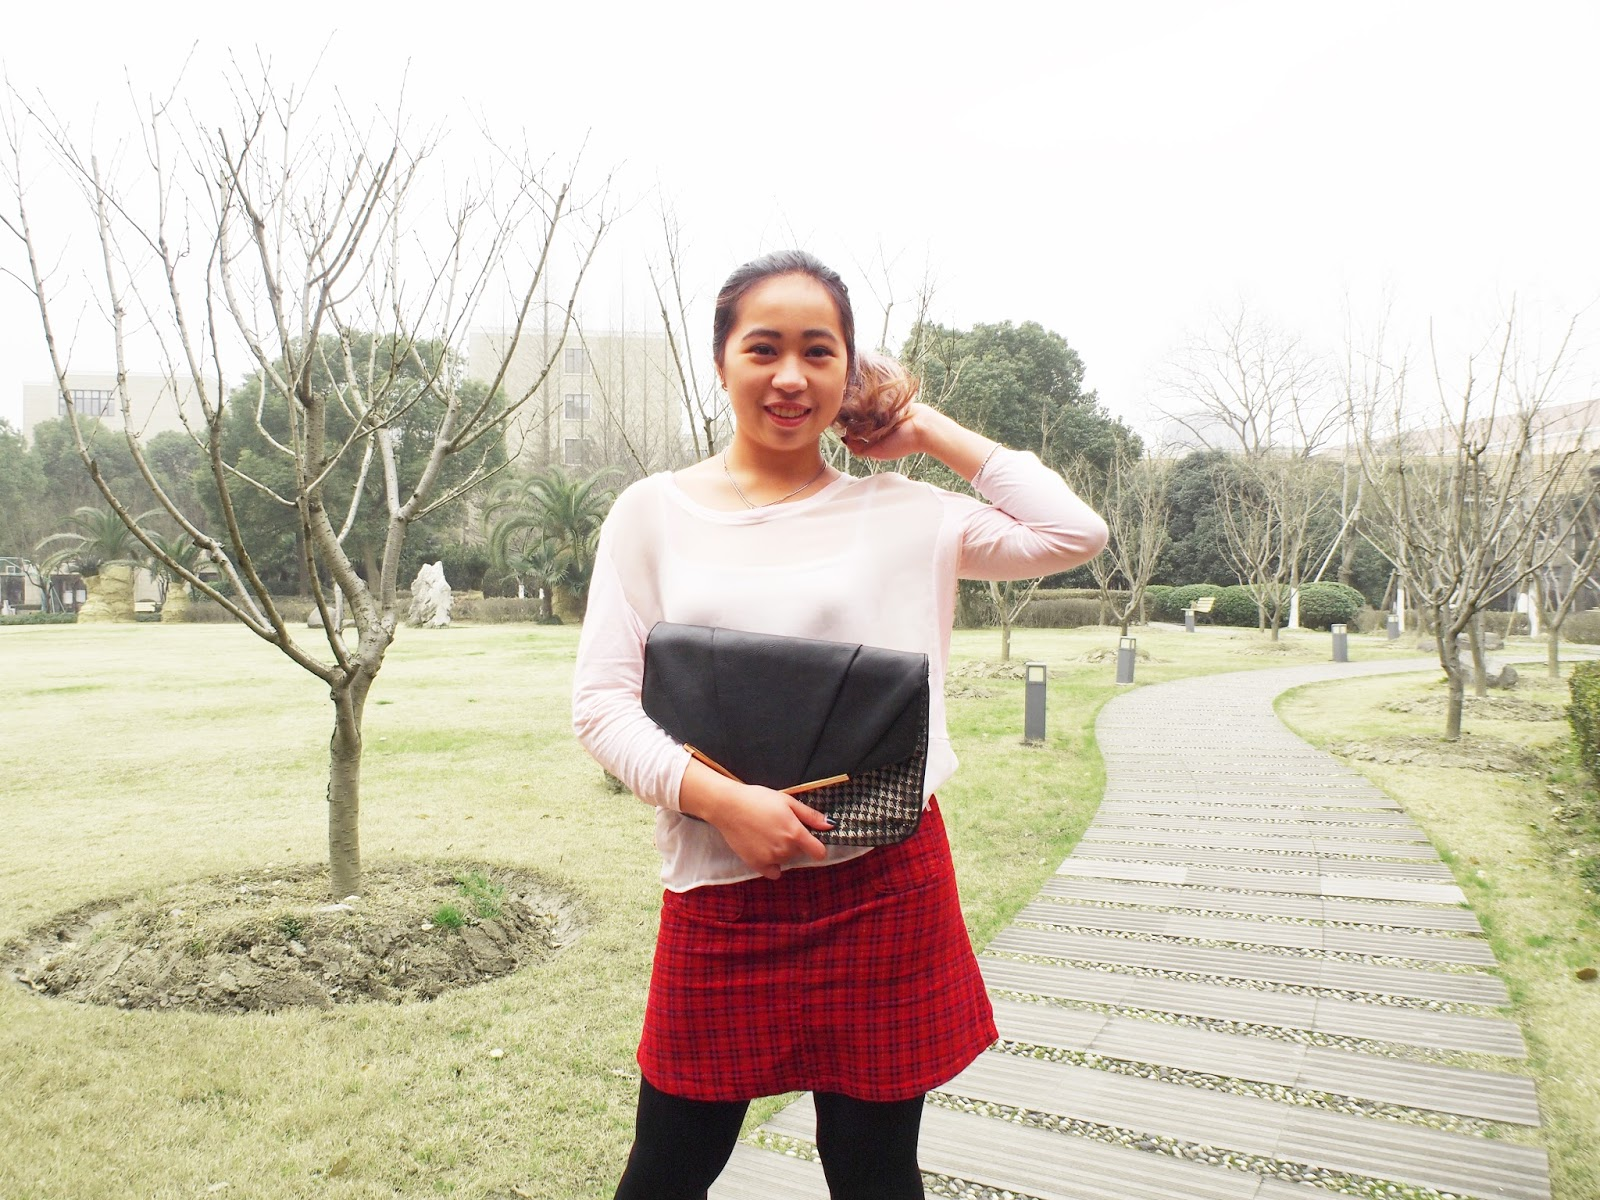 This is a photo of styling a New Look Gold Black Houndstooth Clutch together with Mango Top and Plaid Red Skirt